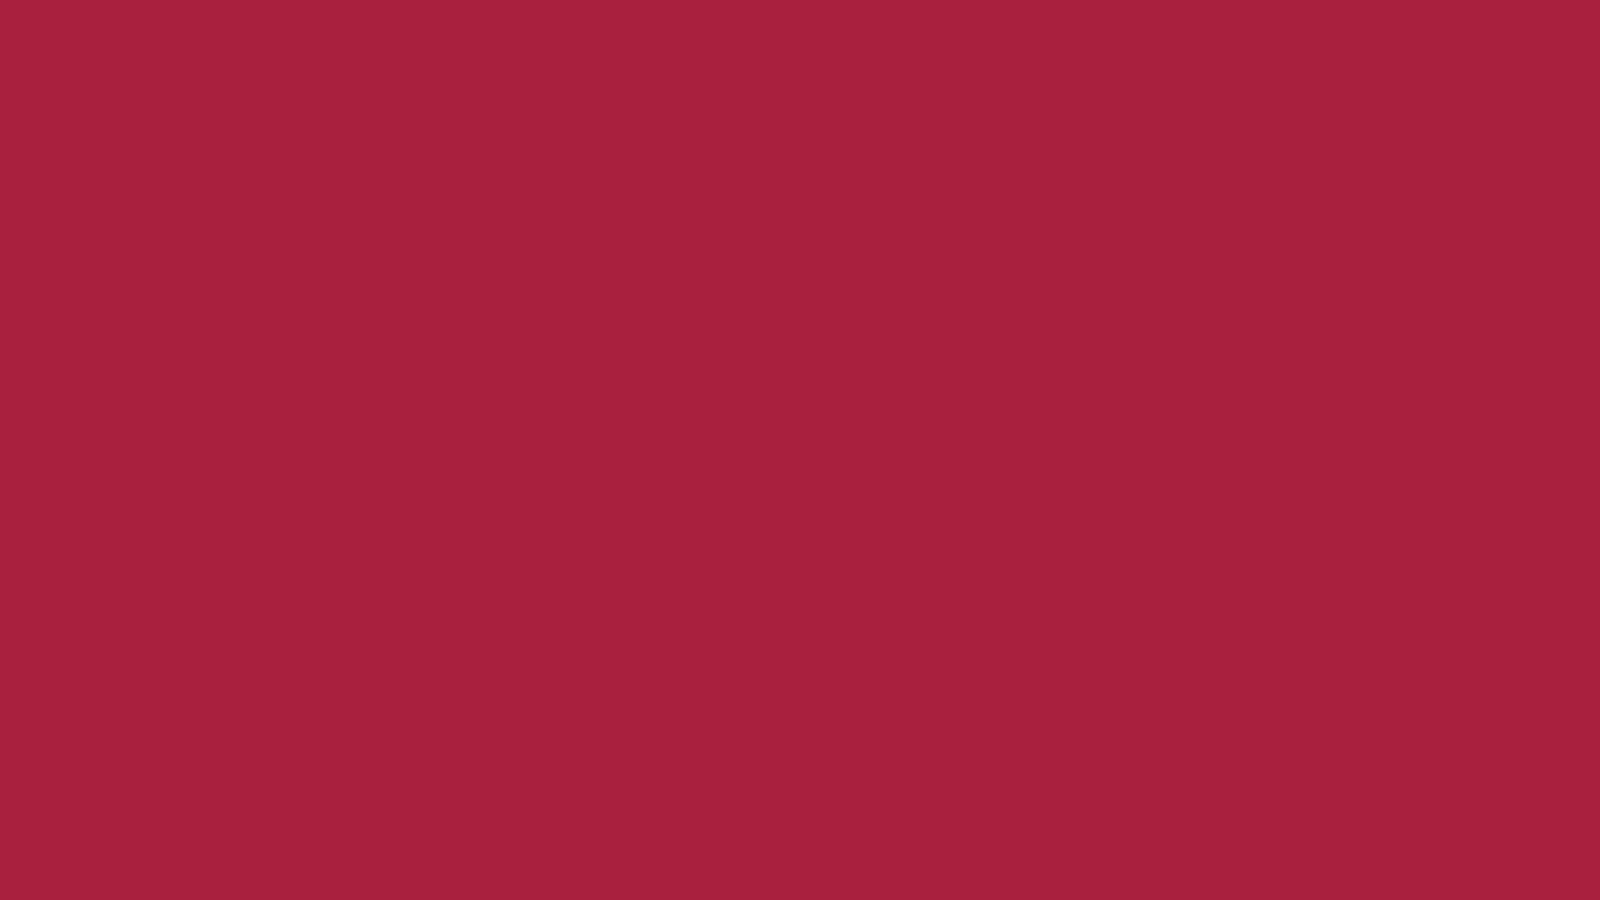 1600x900 Deep Carmine Solid Color Background